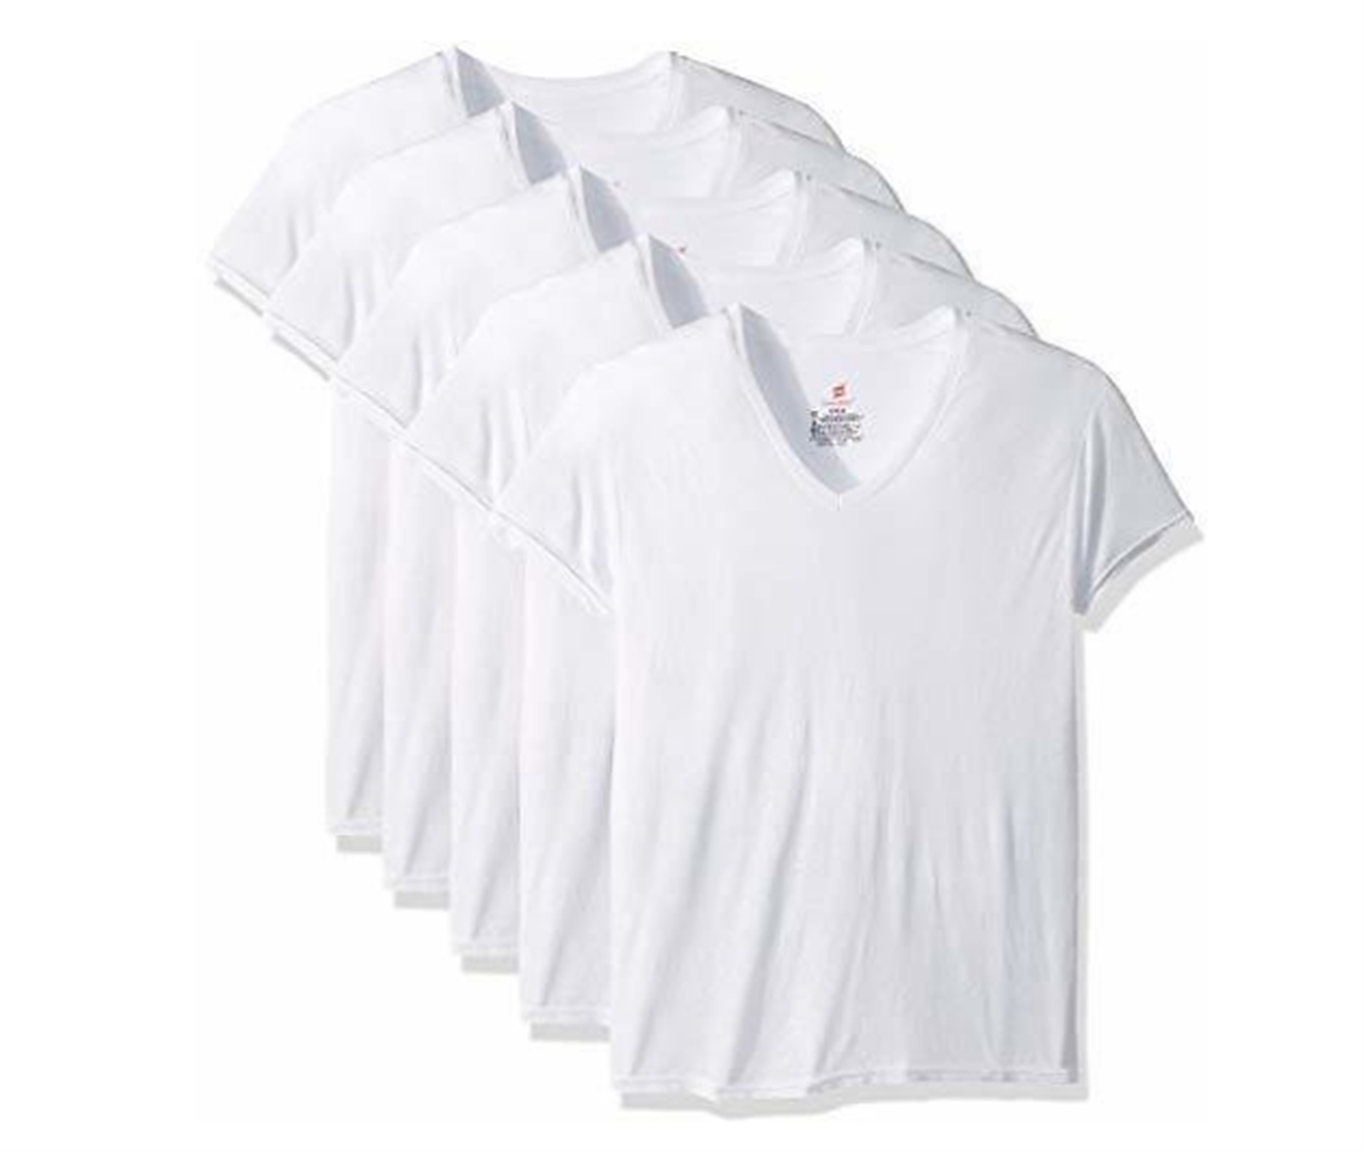 Amazon – Hanes Men's 5-Pack ComfortBlend V-Neck T-Shirt with FreshIQ Only $7.50! That's Just $1.50 each!